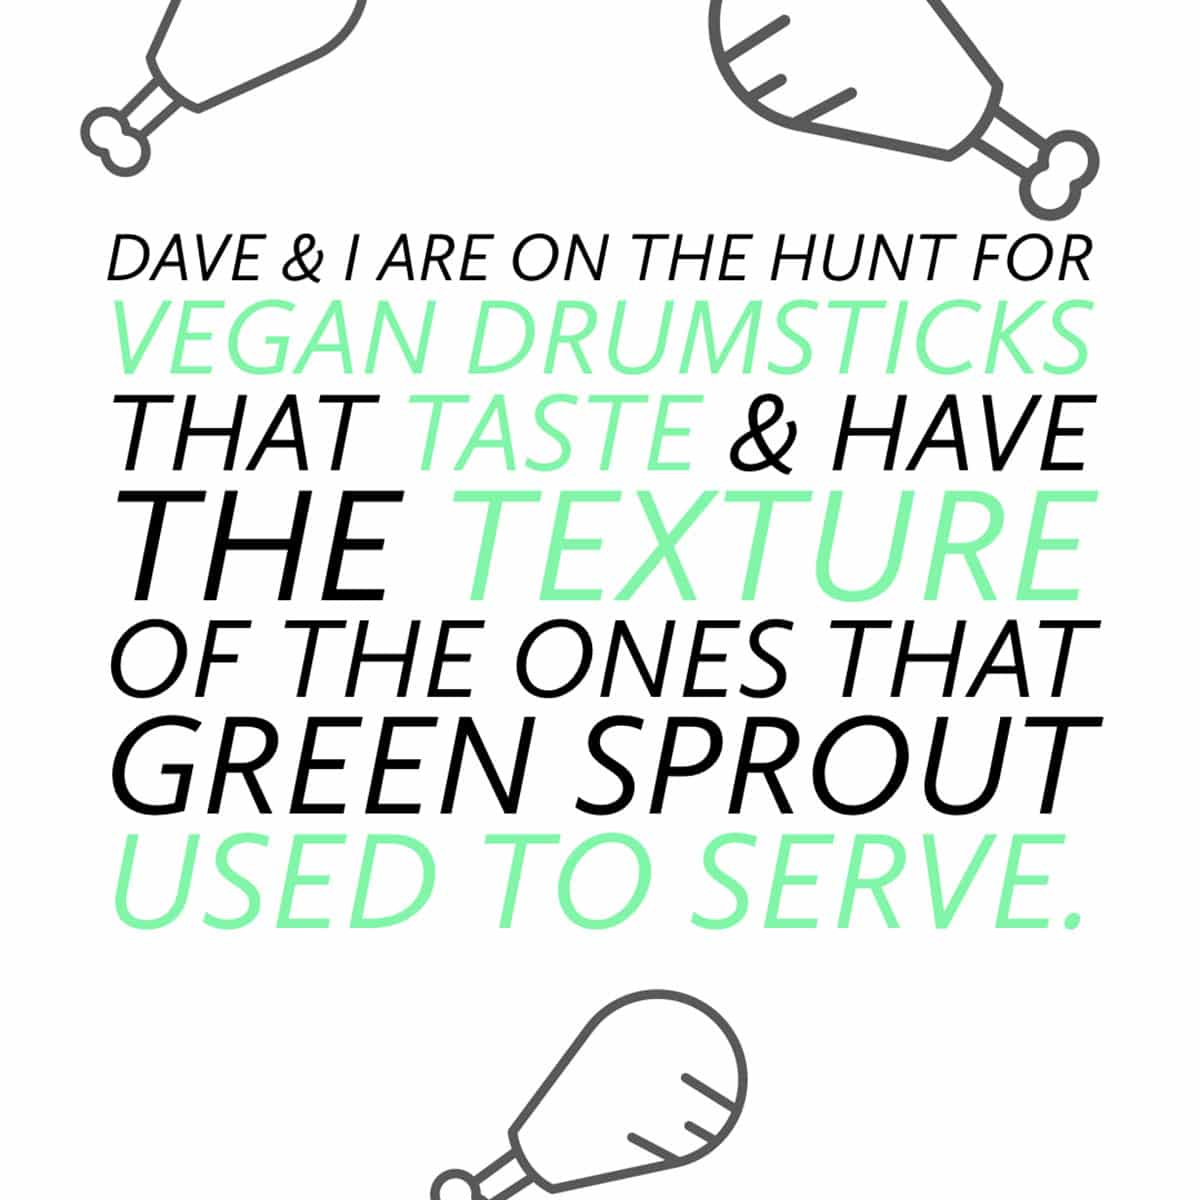 """graphic with text that reads: """"Dave and I are on the hunt for vegan drumsticks that taste and have the texture of the ones that Green Sprout used to serve."""""""